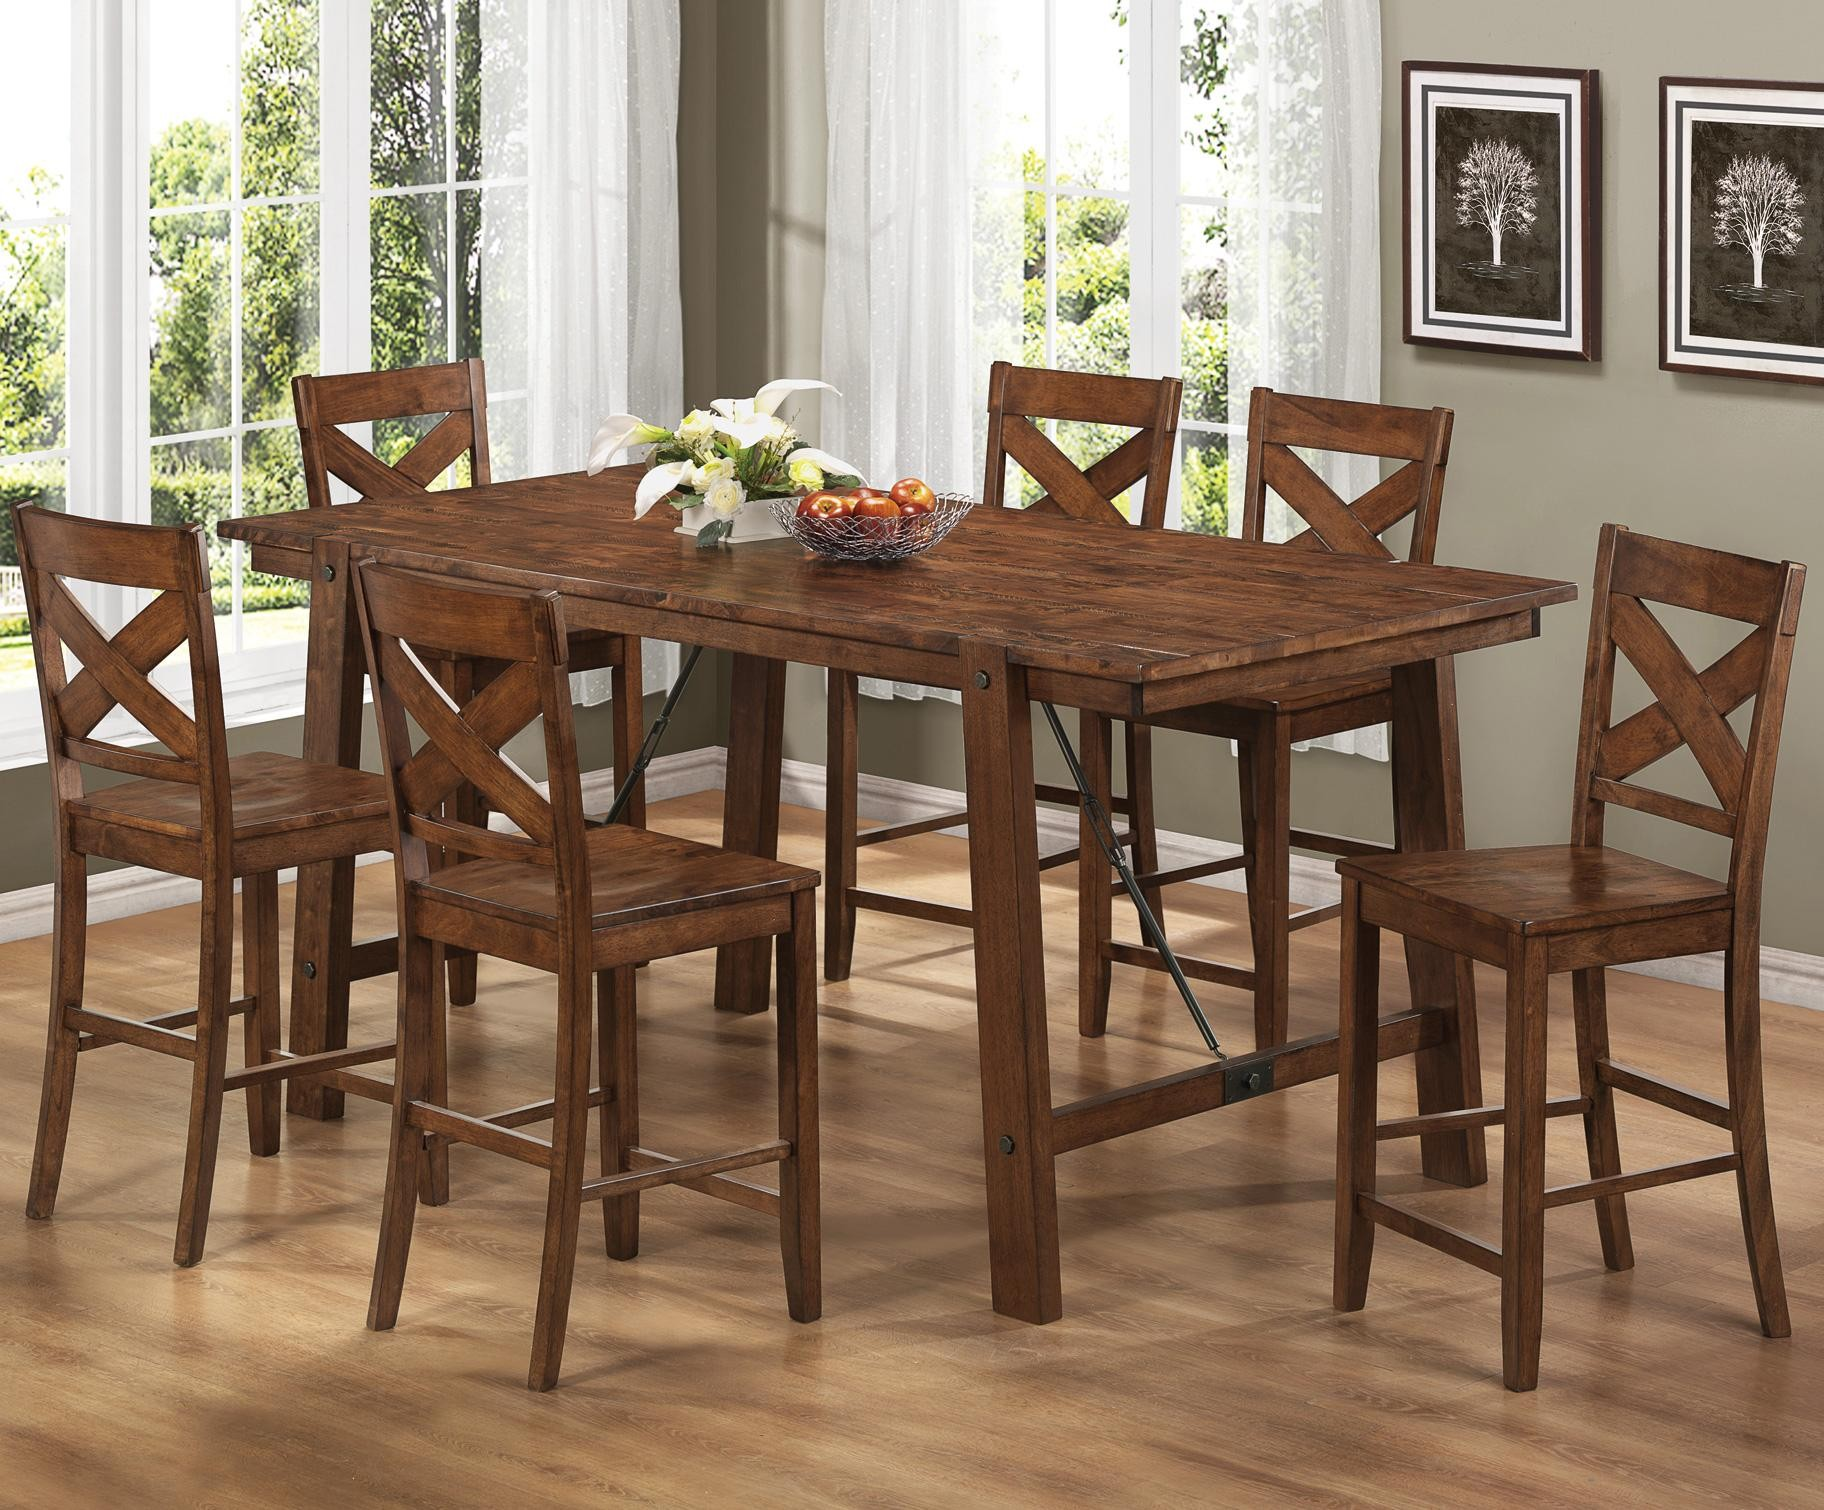 High top kitchen table sets homesfeed for Kitchen table set 6 chairs